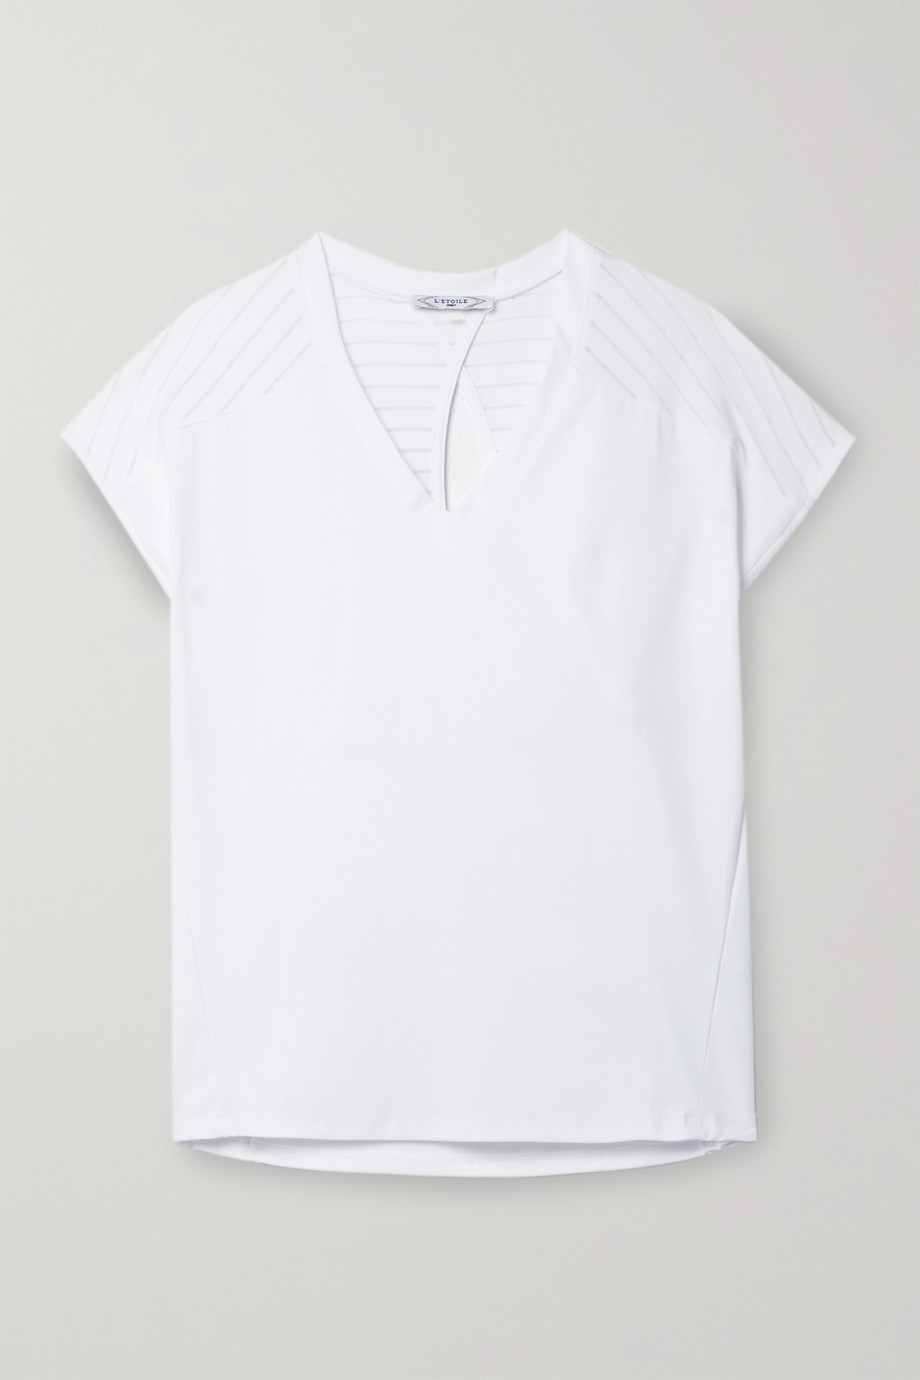 L'Etoile Sport Performance perforated striped stretch-jersey tennis T-shirt